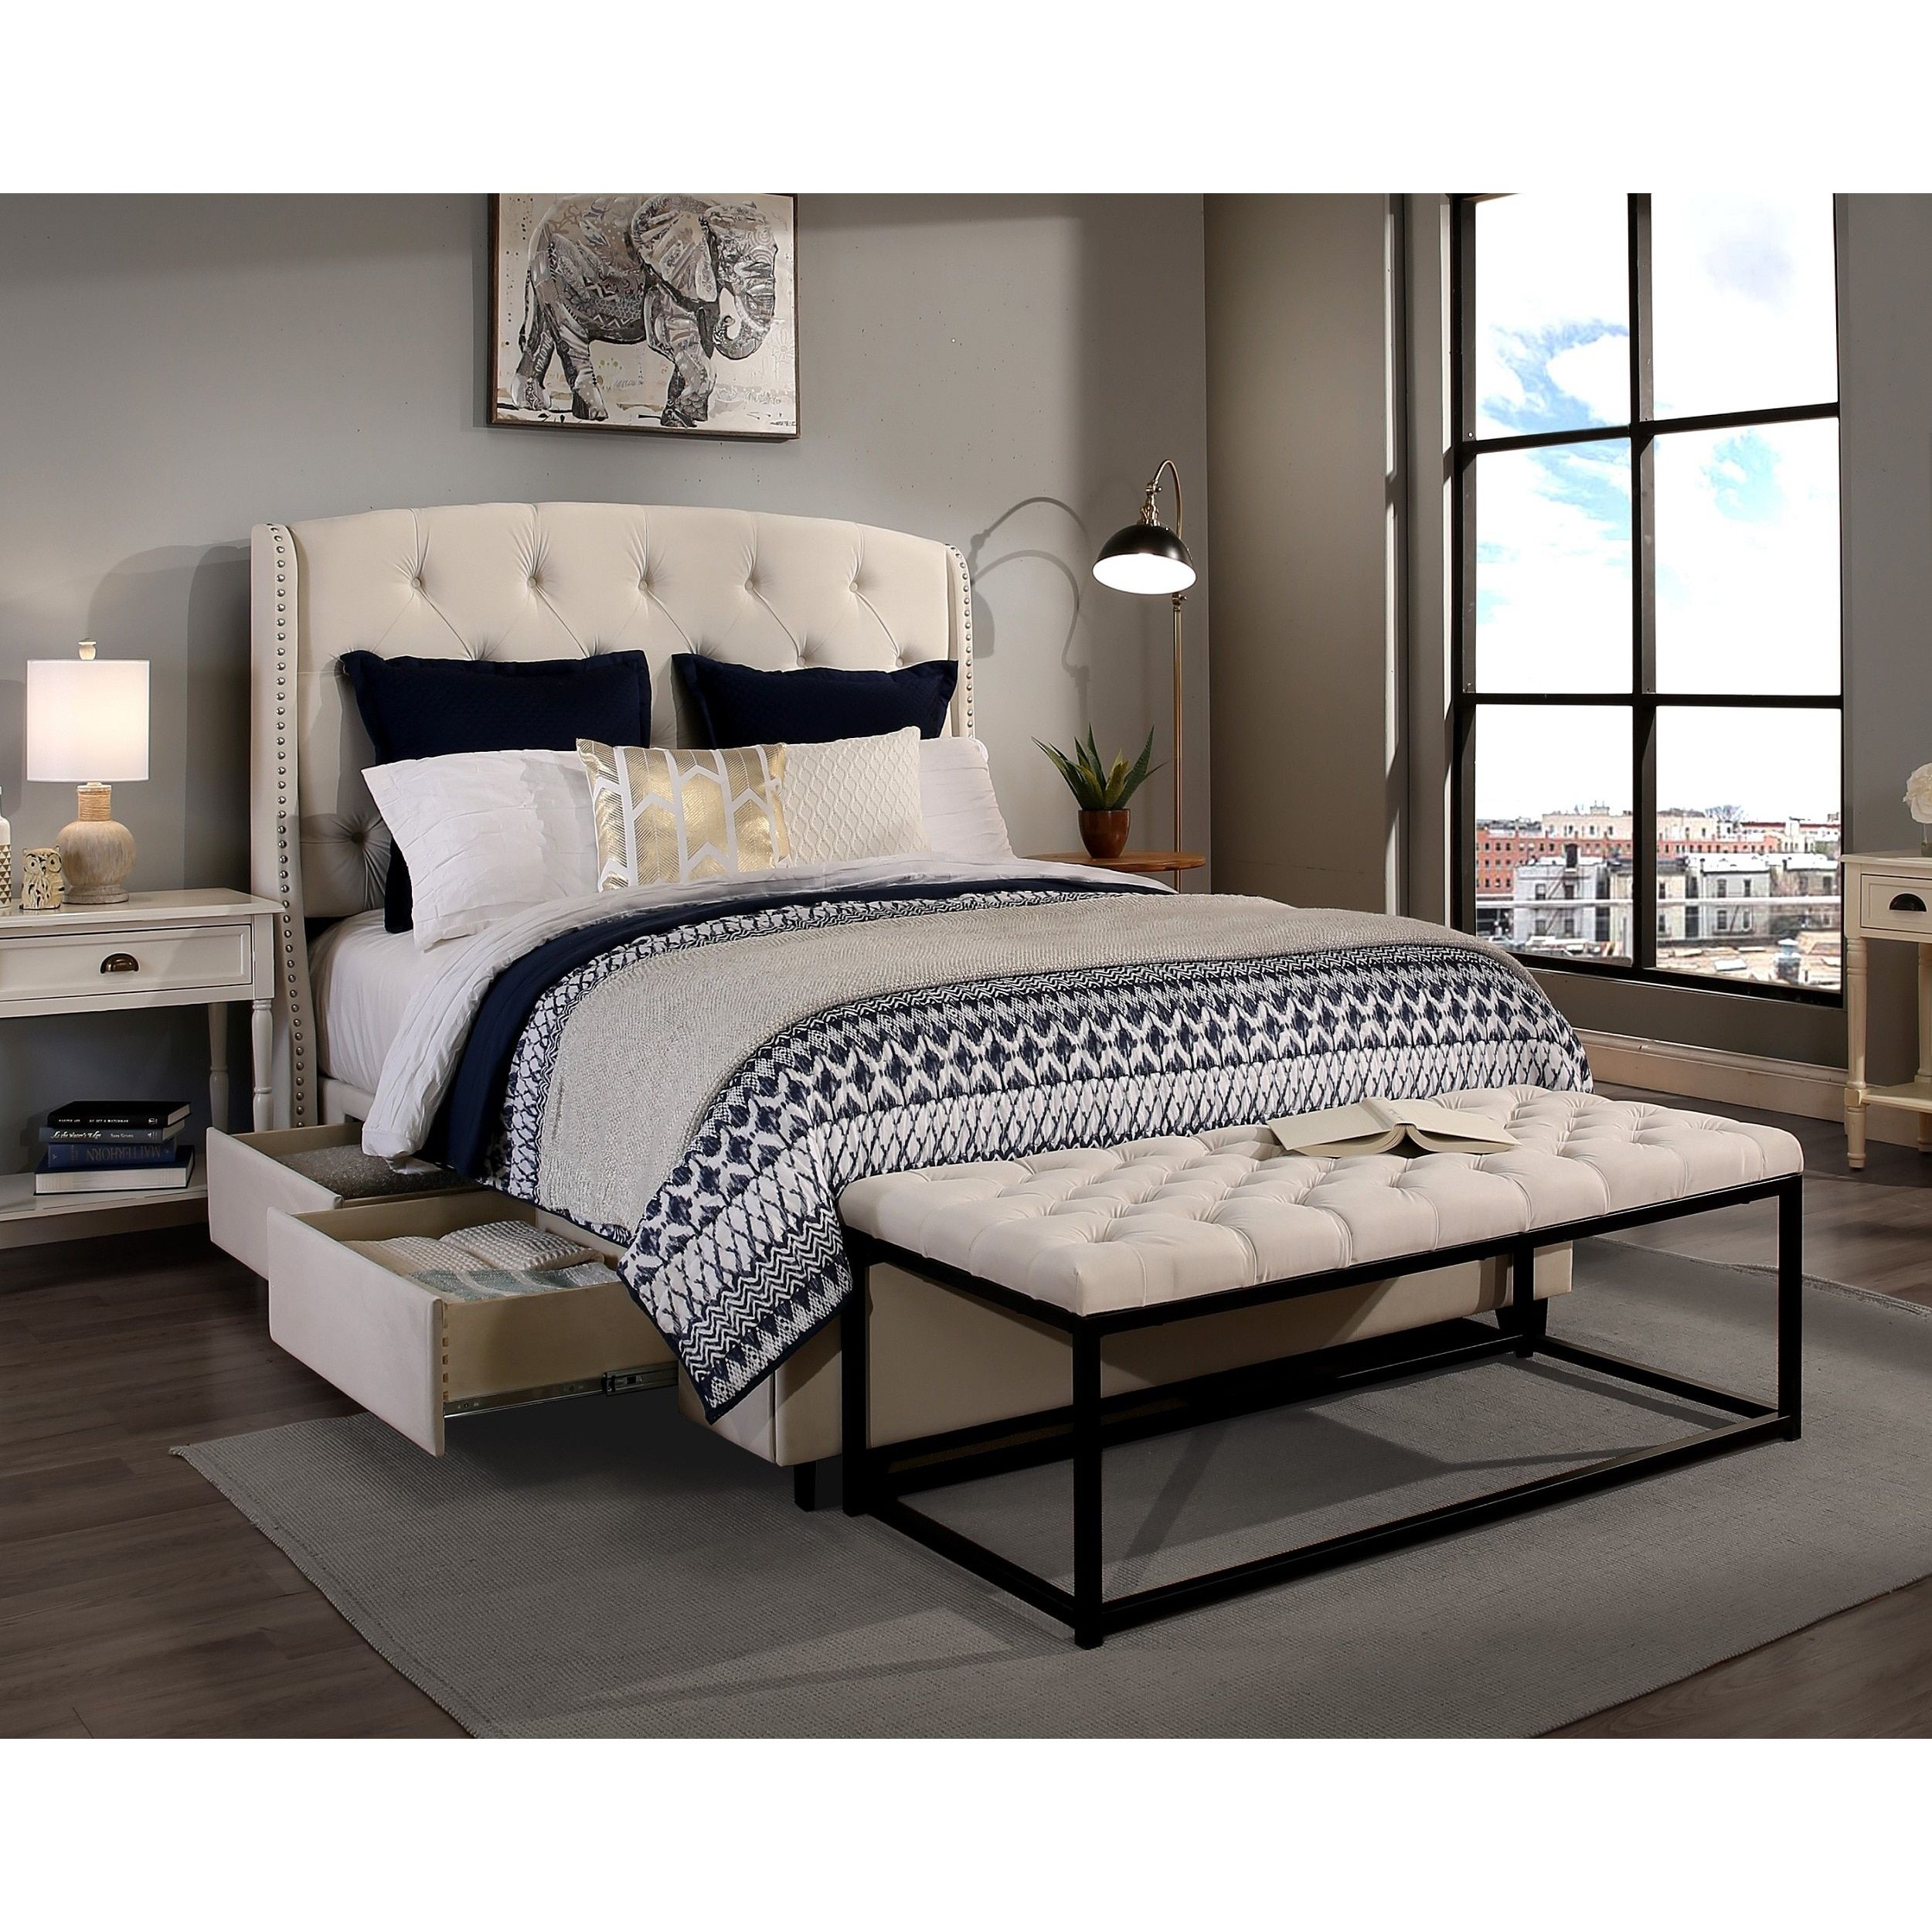 Republic Design House Peyton Ivory Kingcal King Headboard Storage